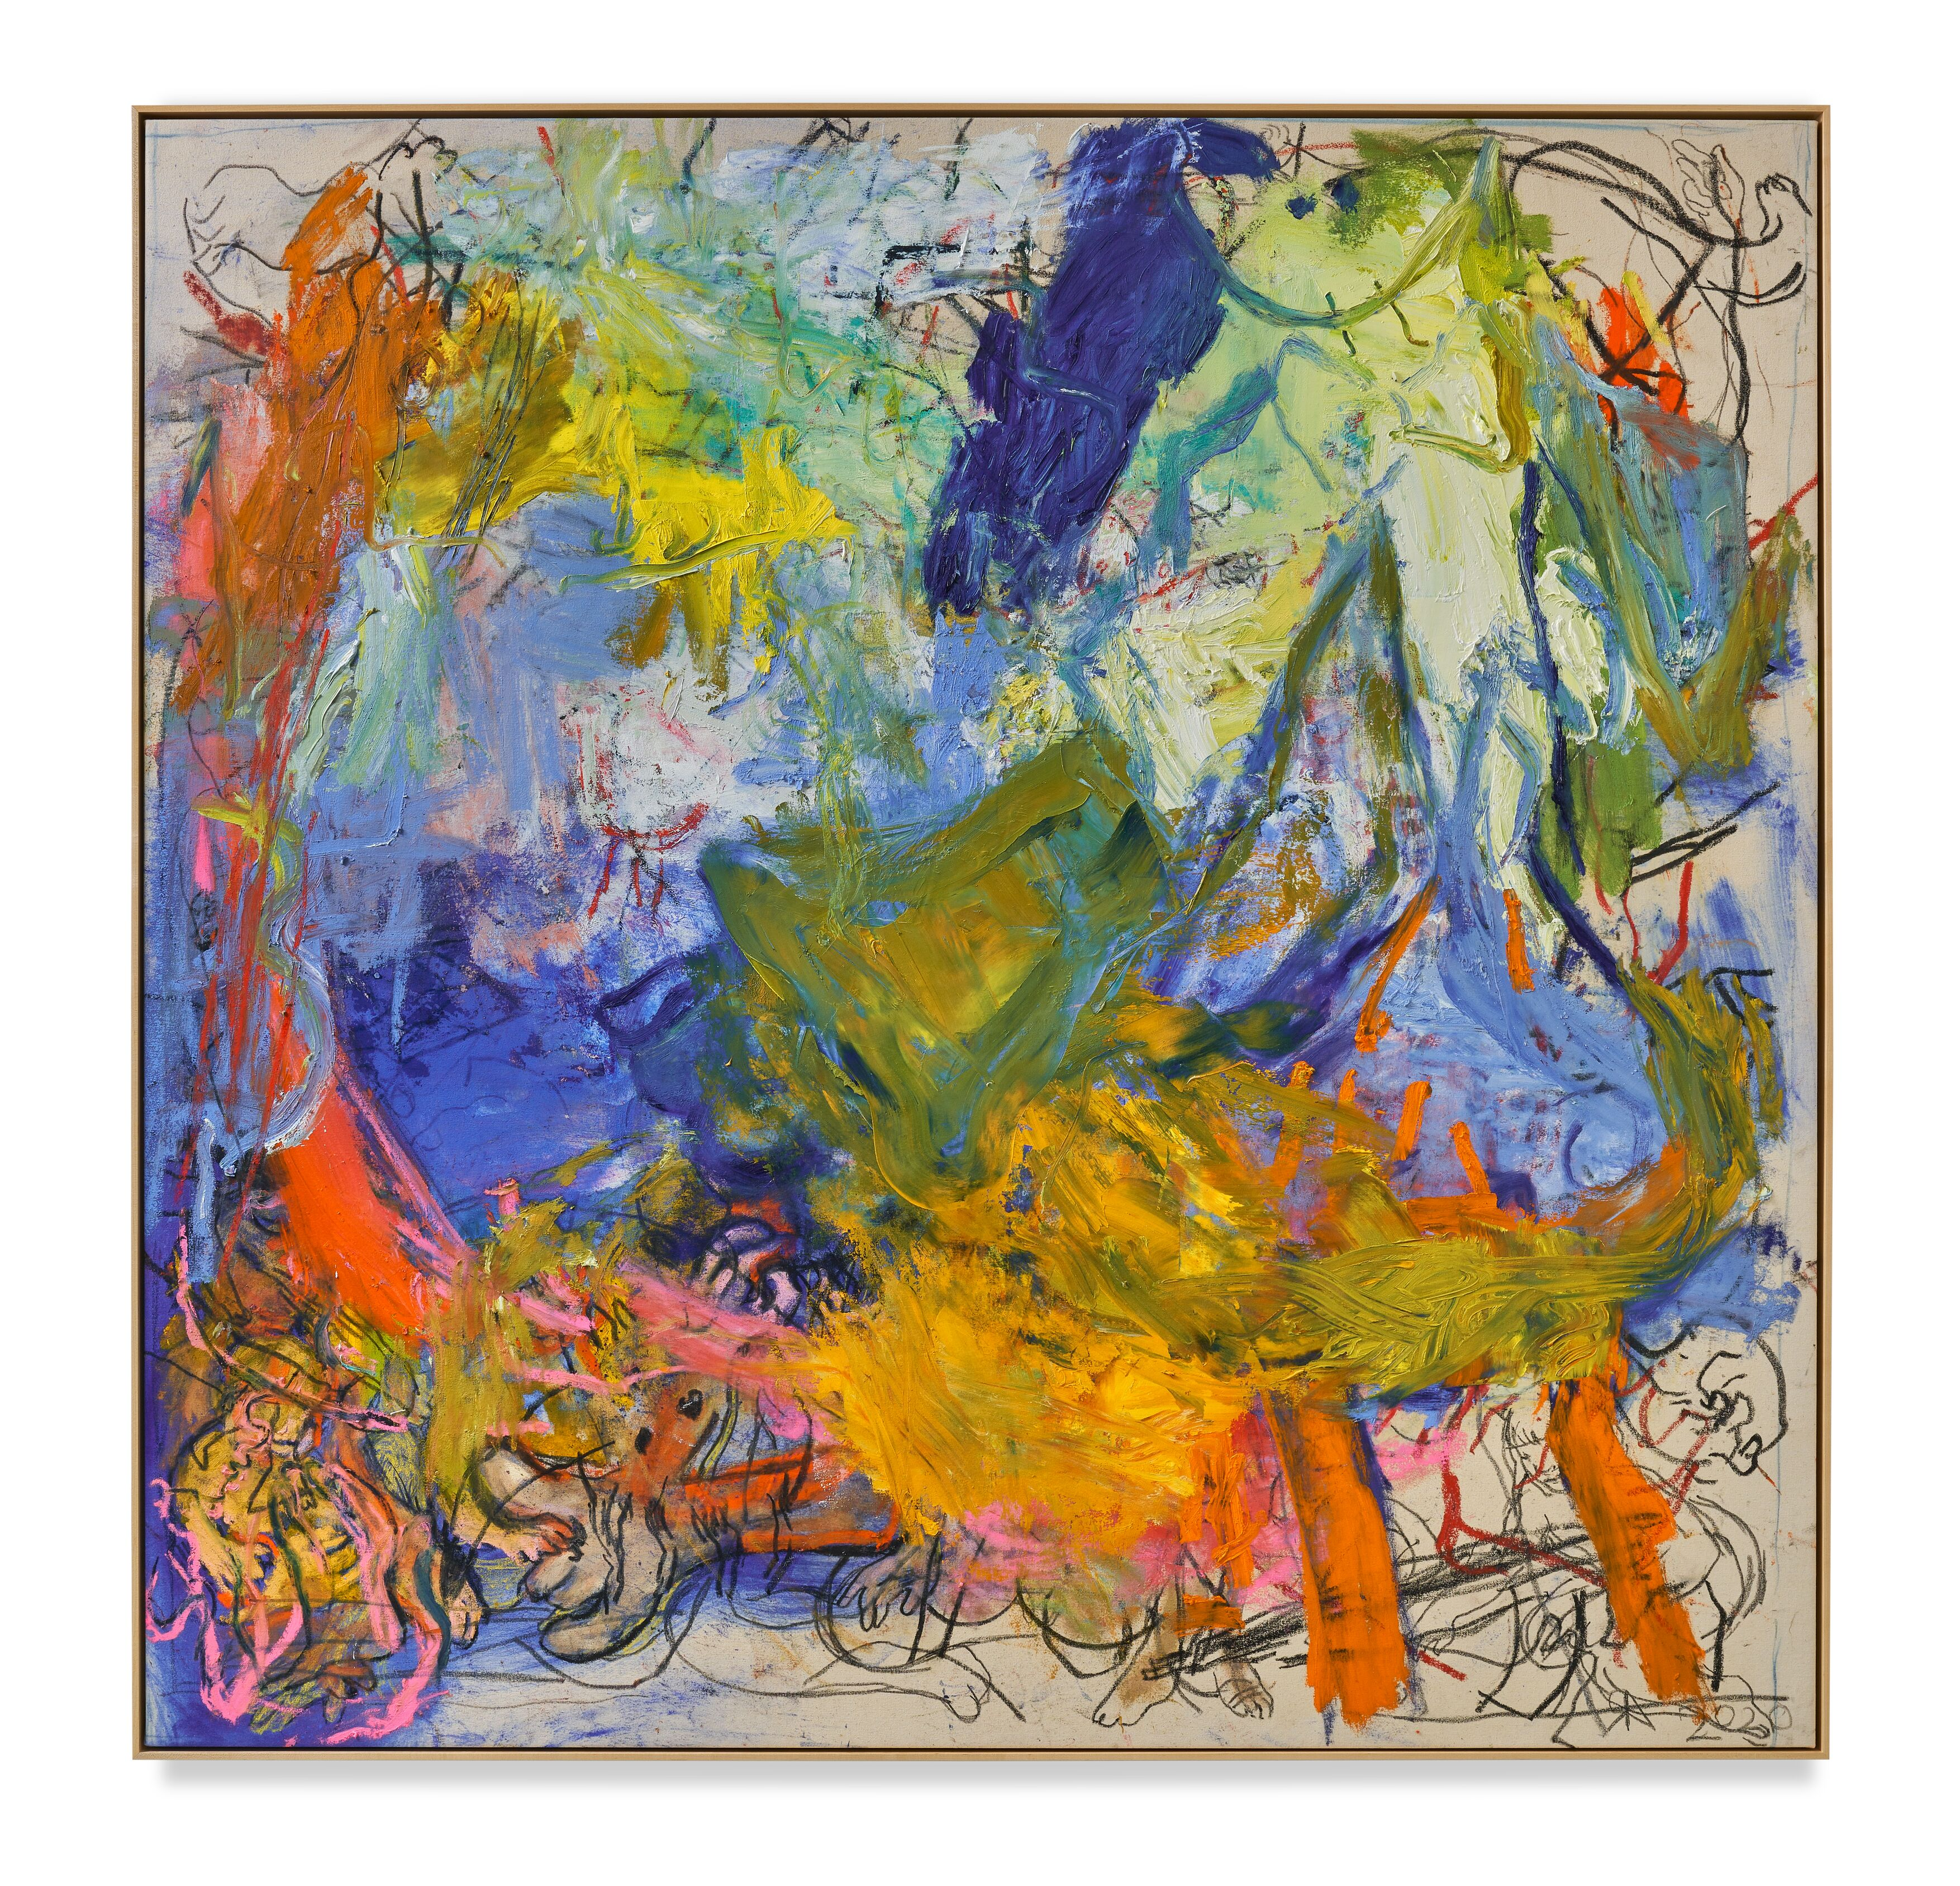 Rita Ackermann / Mama, Skirt on Fire / 2020 / Oil, acrylic, pigment, and china marker on canvas / 193 x 190.5 cm / 76 x 75 in / Courtesy the artist and Hauser & Wirth. Photo: Jon Etter